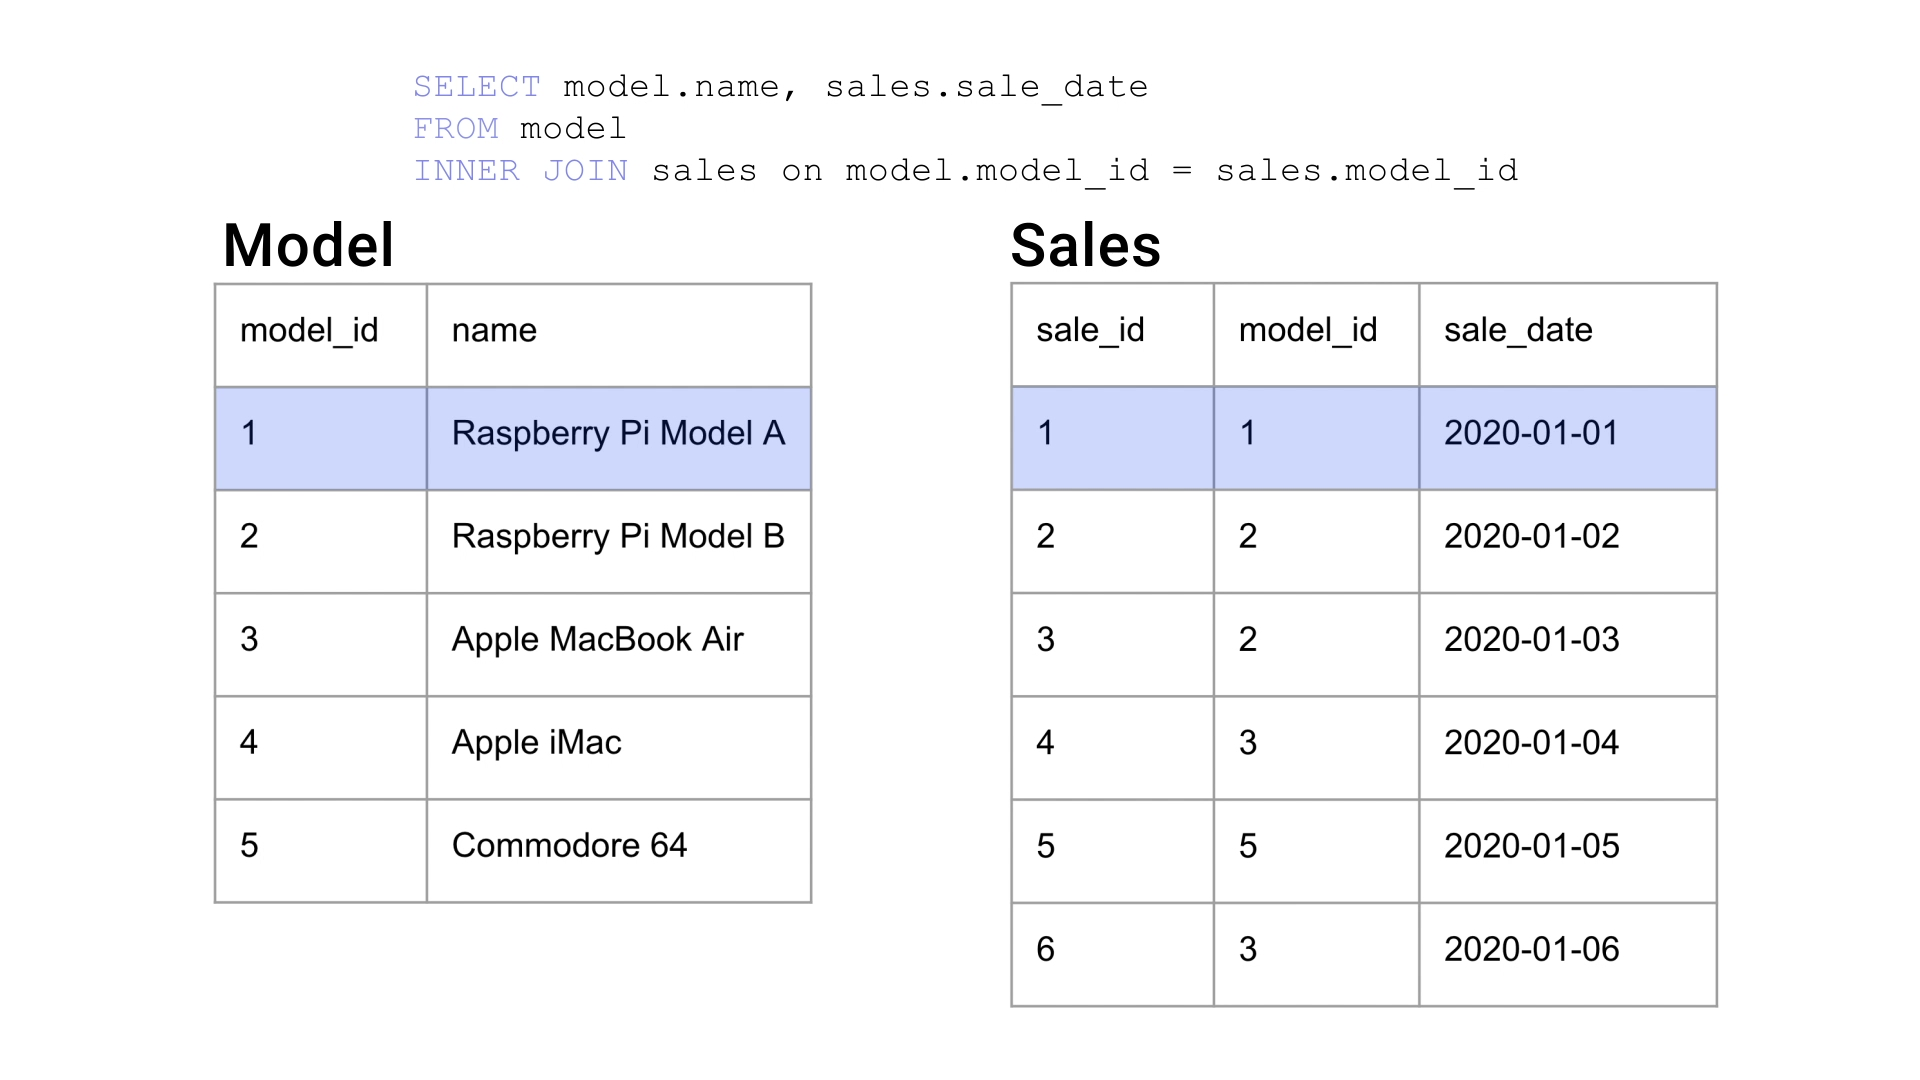 A still from the video showing the `model` and `sales` tables with the first record of each higlighted.